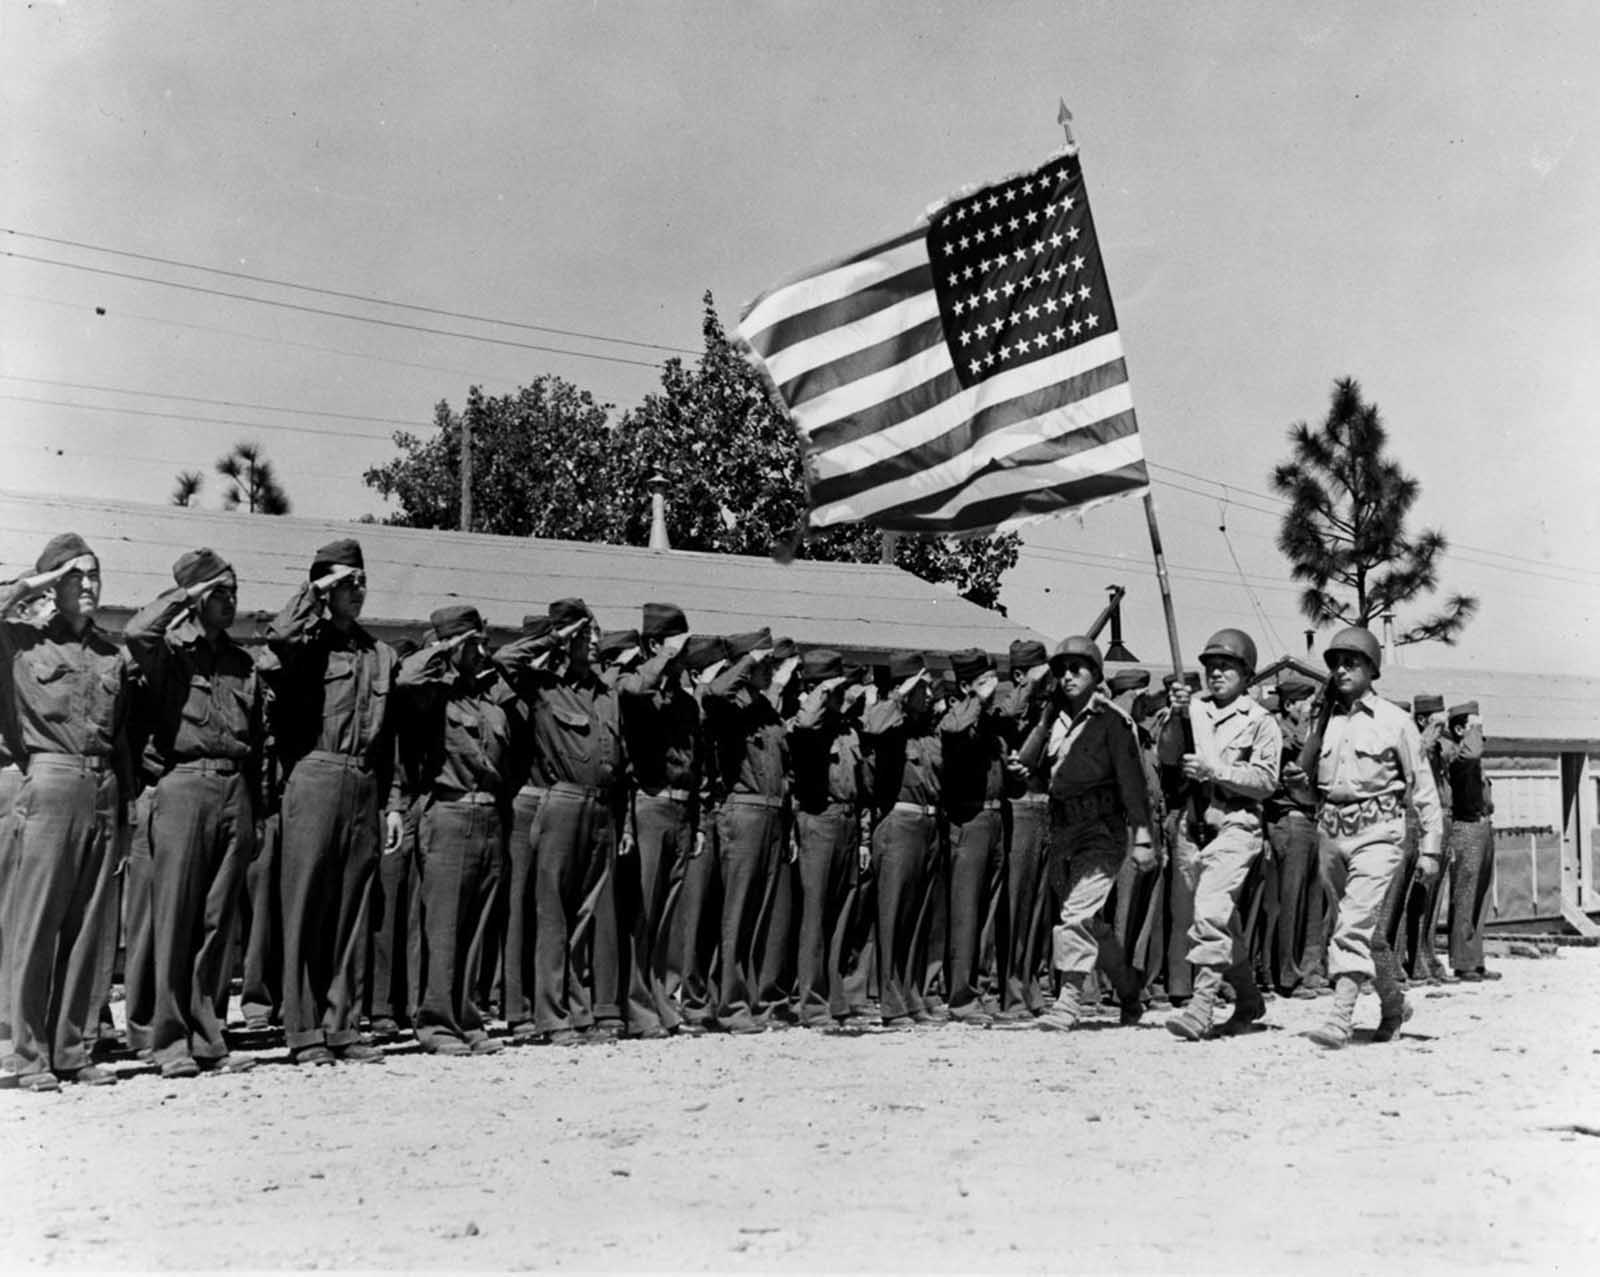 Soldiers of the 442nd salute the flag at Camp Shelby, Mississippi. June, 1943.